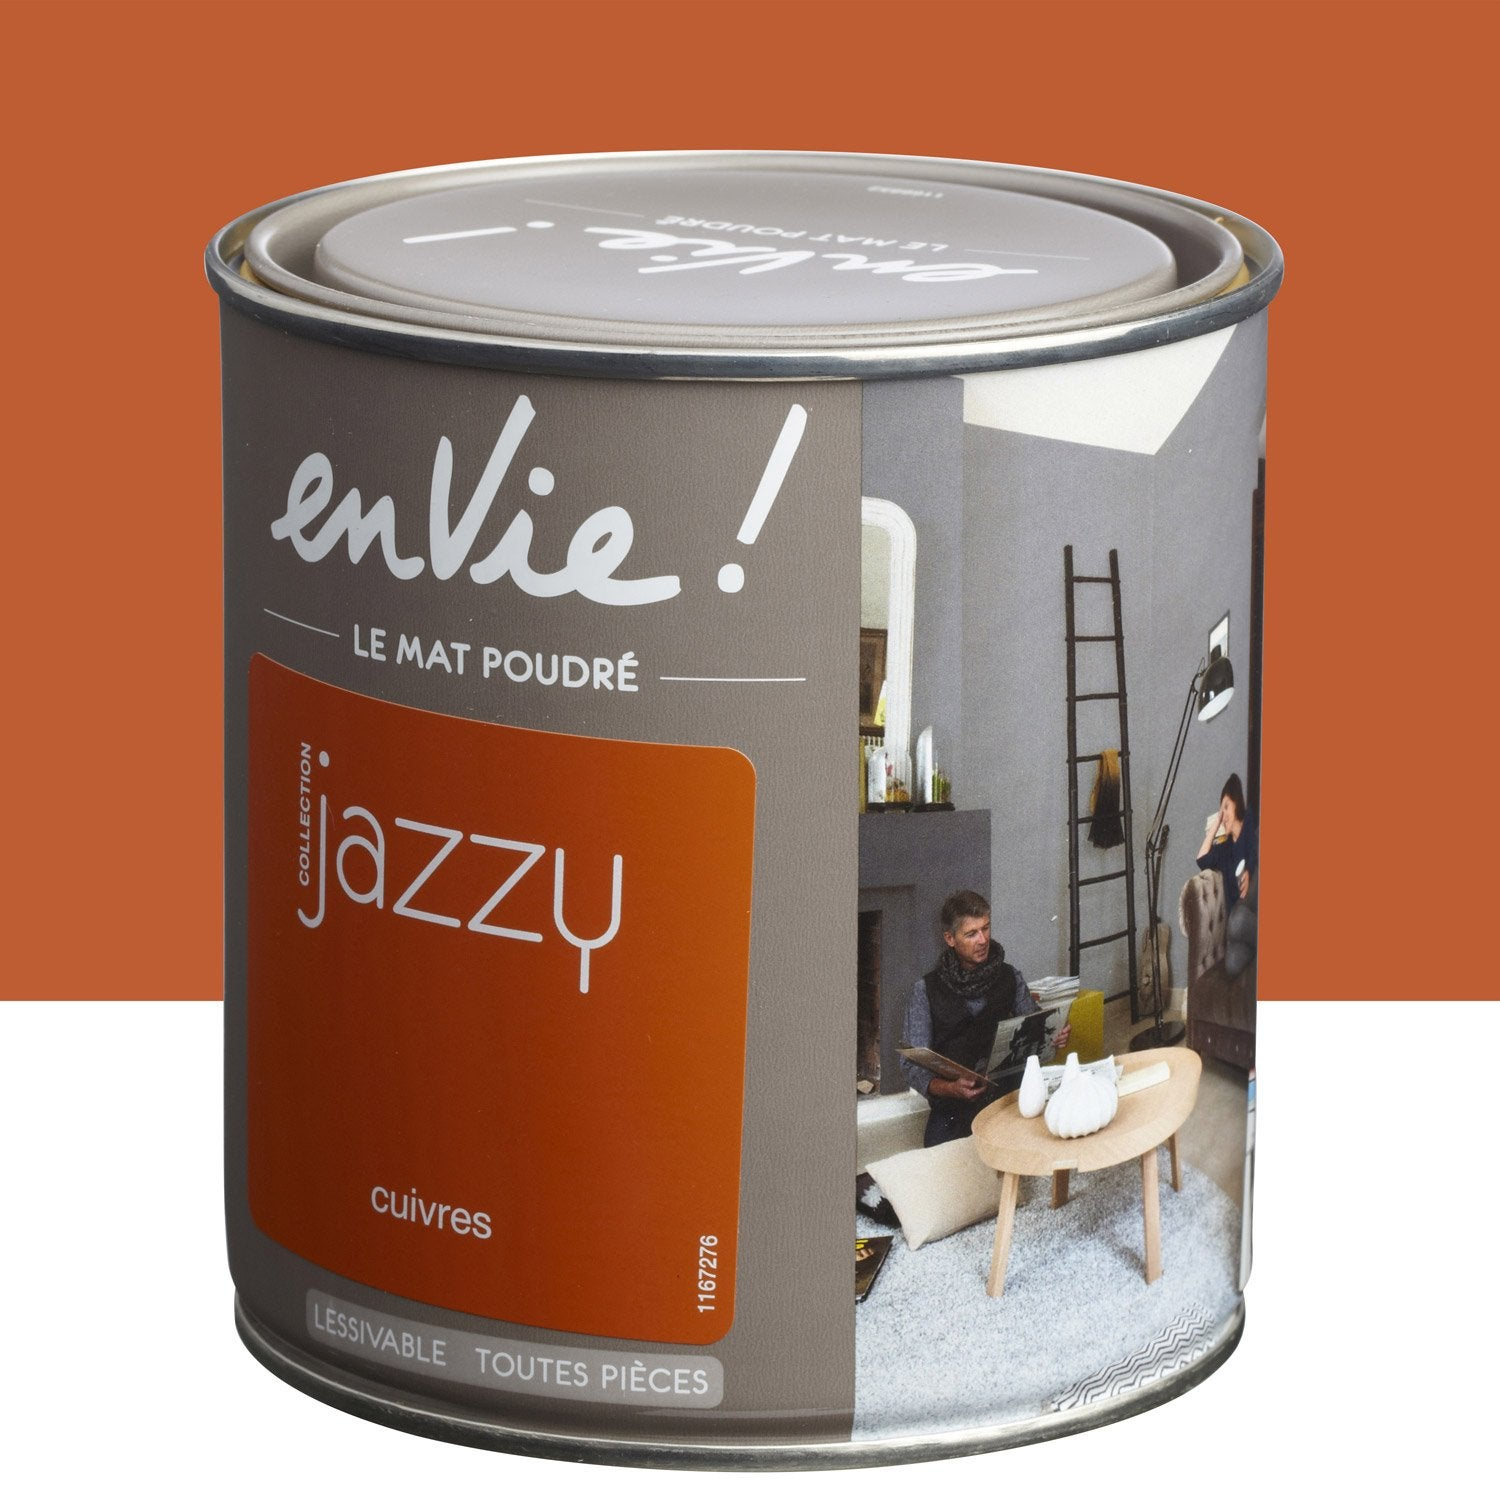 Peinture Orange Cuivres Luxens Envie Collection Jazzy 0 5